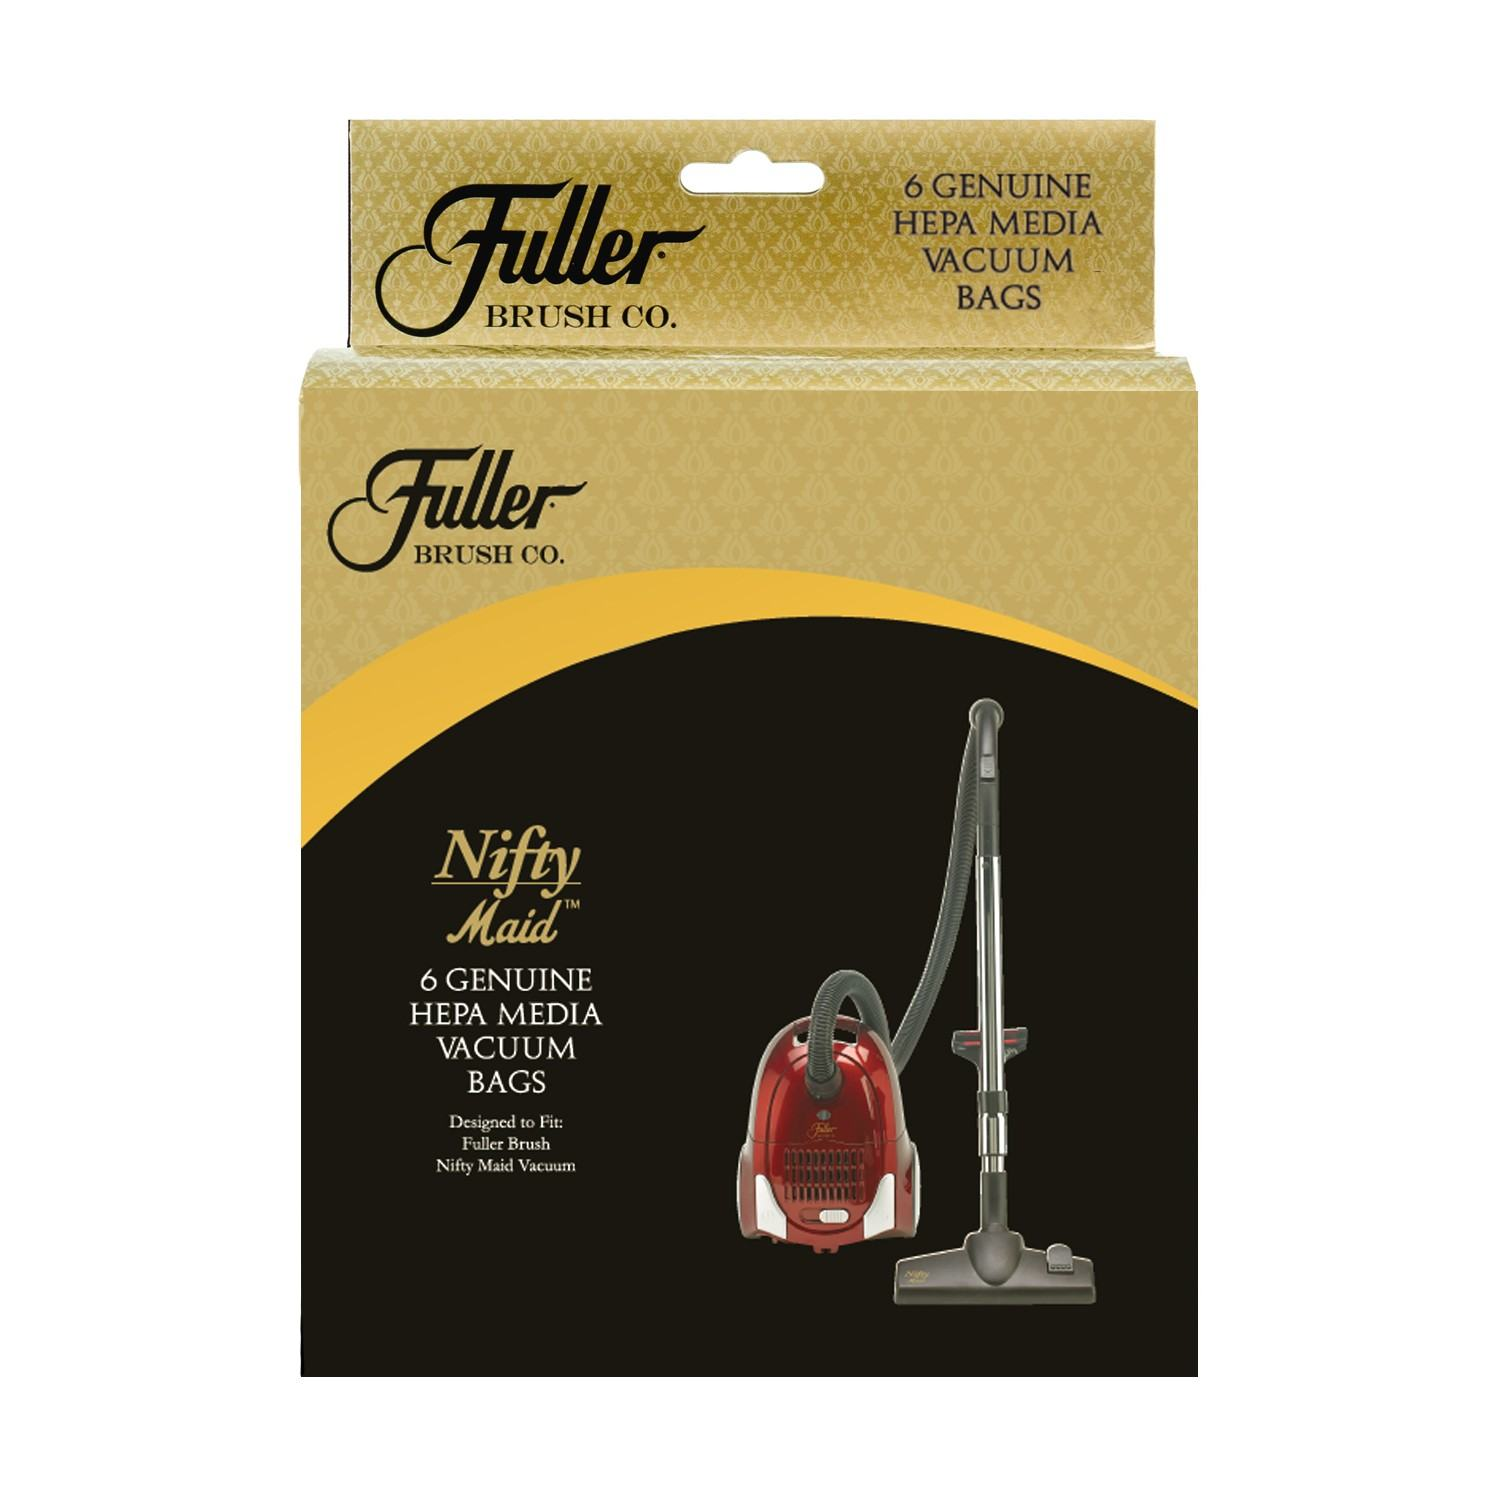 Fuller Brush Nifty Maid HEPA Media Bags